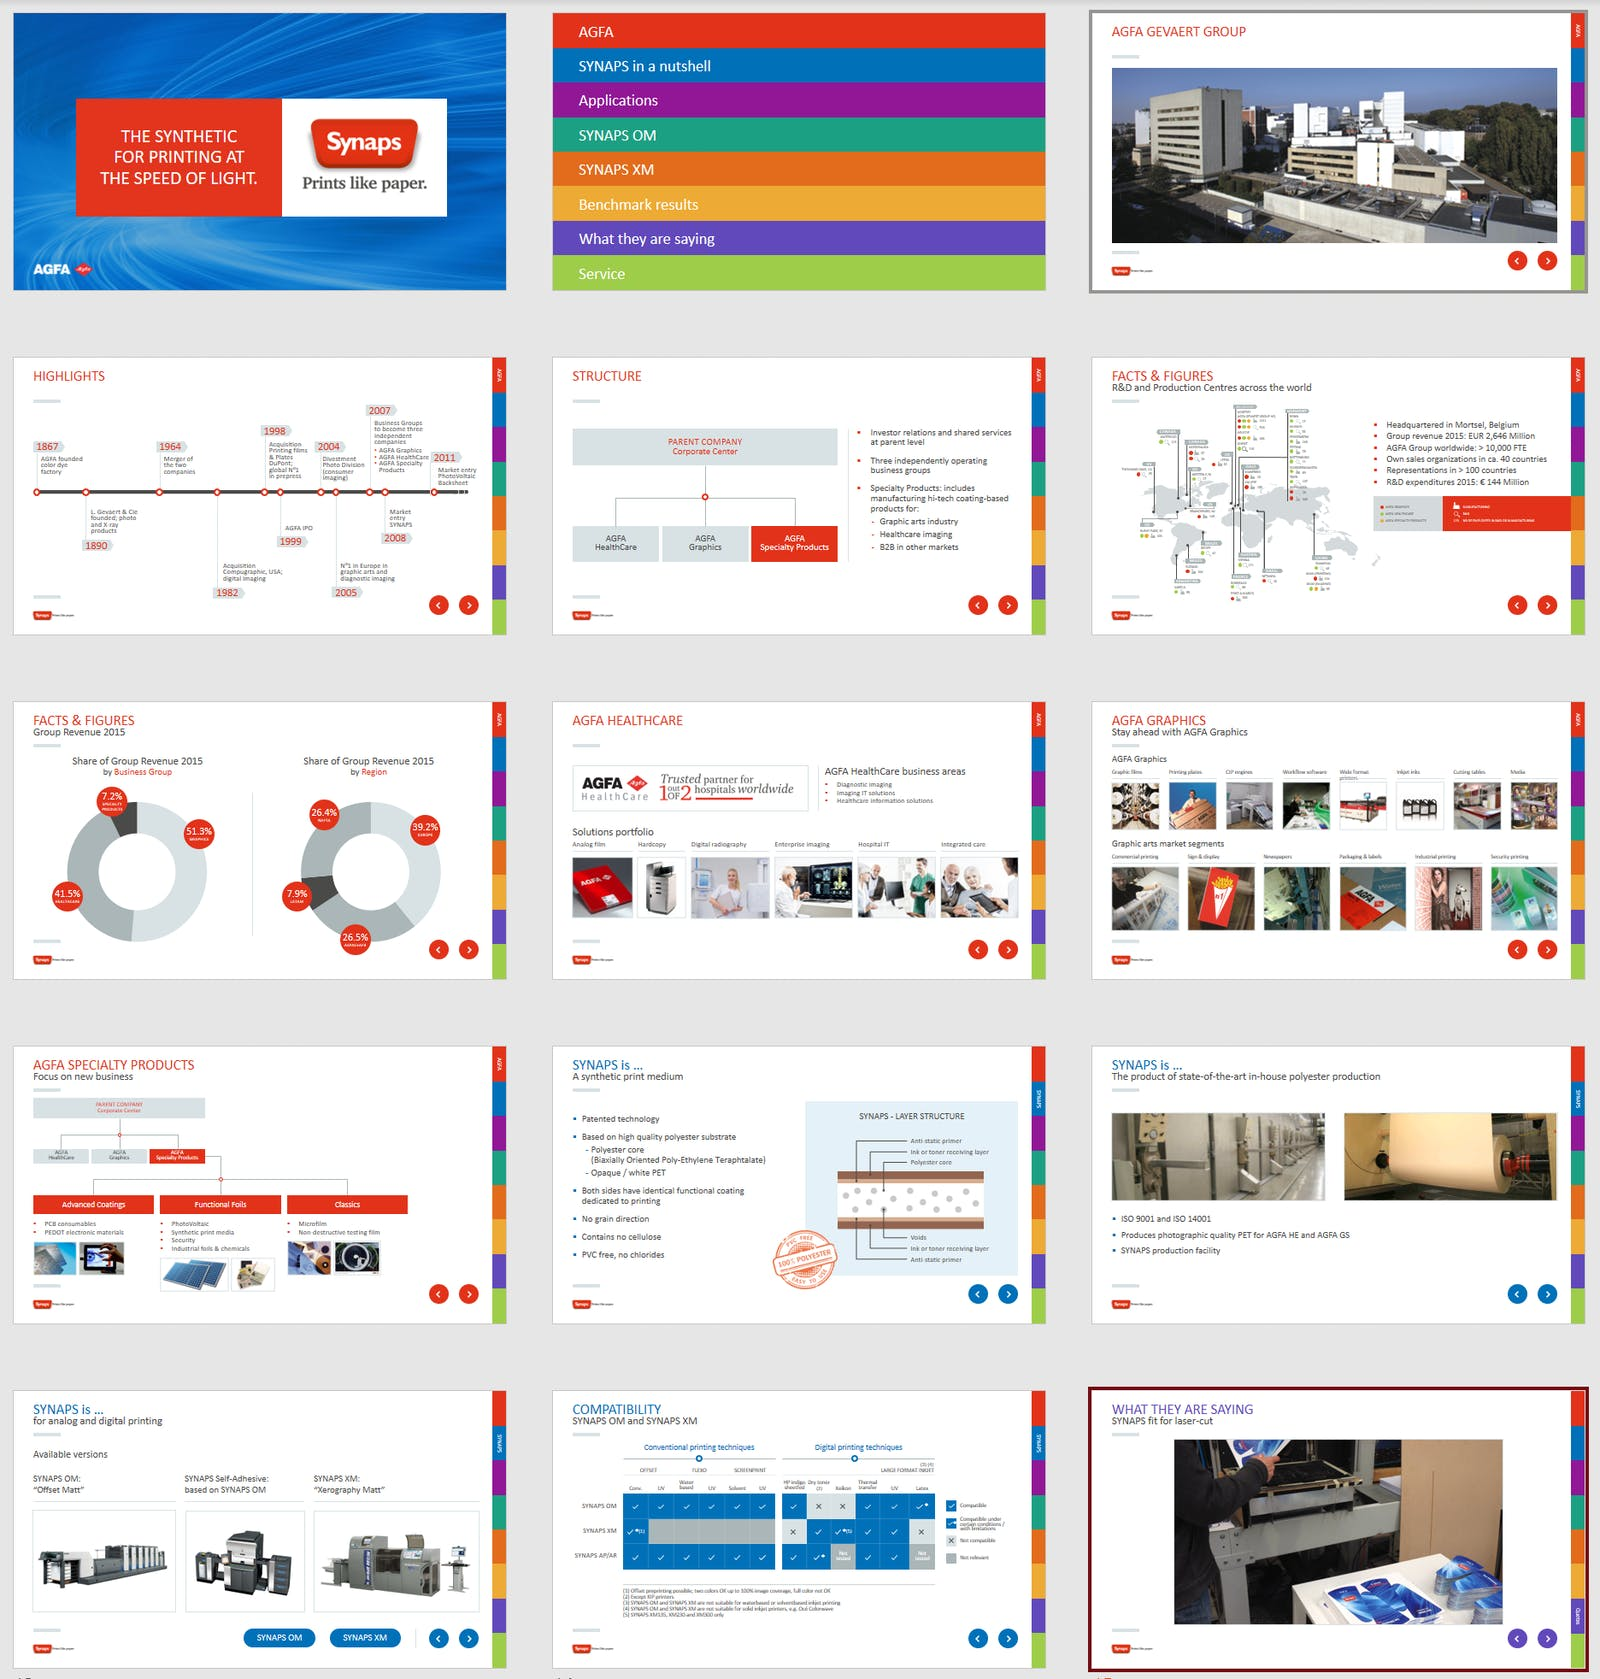 Agfa Graphics Synaps PPT slides